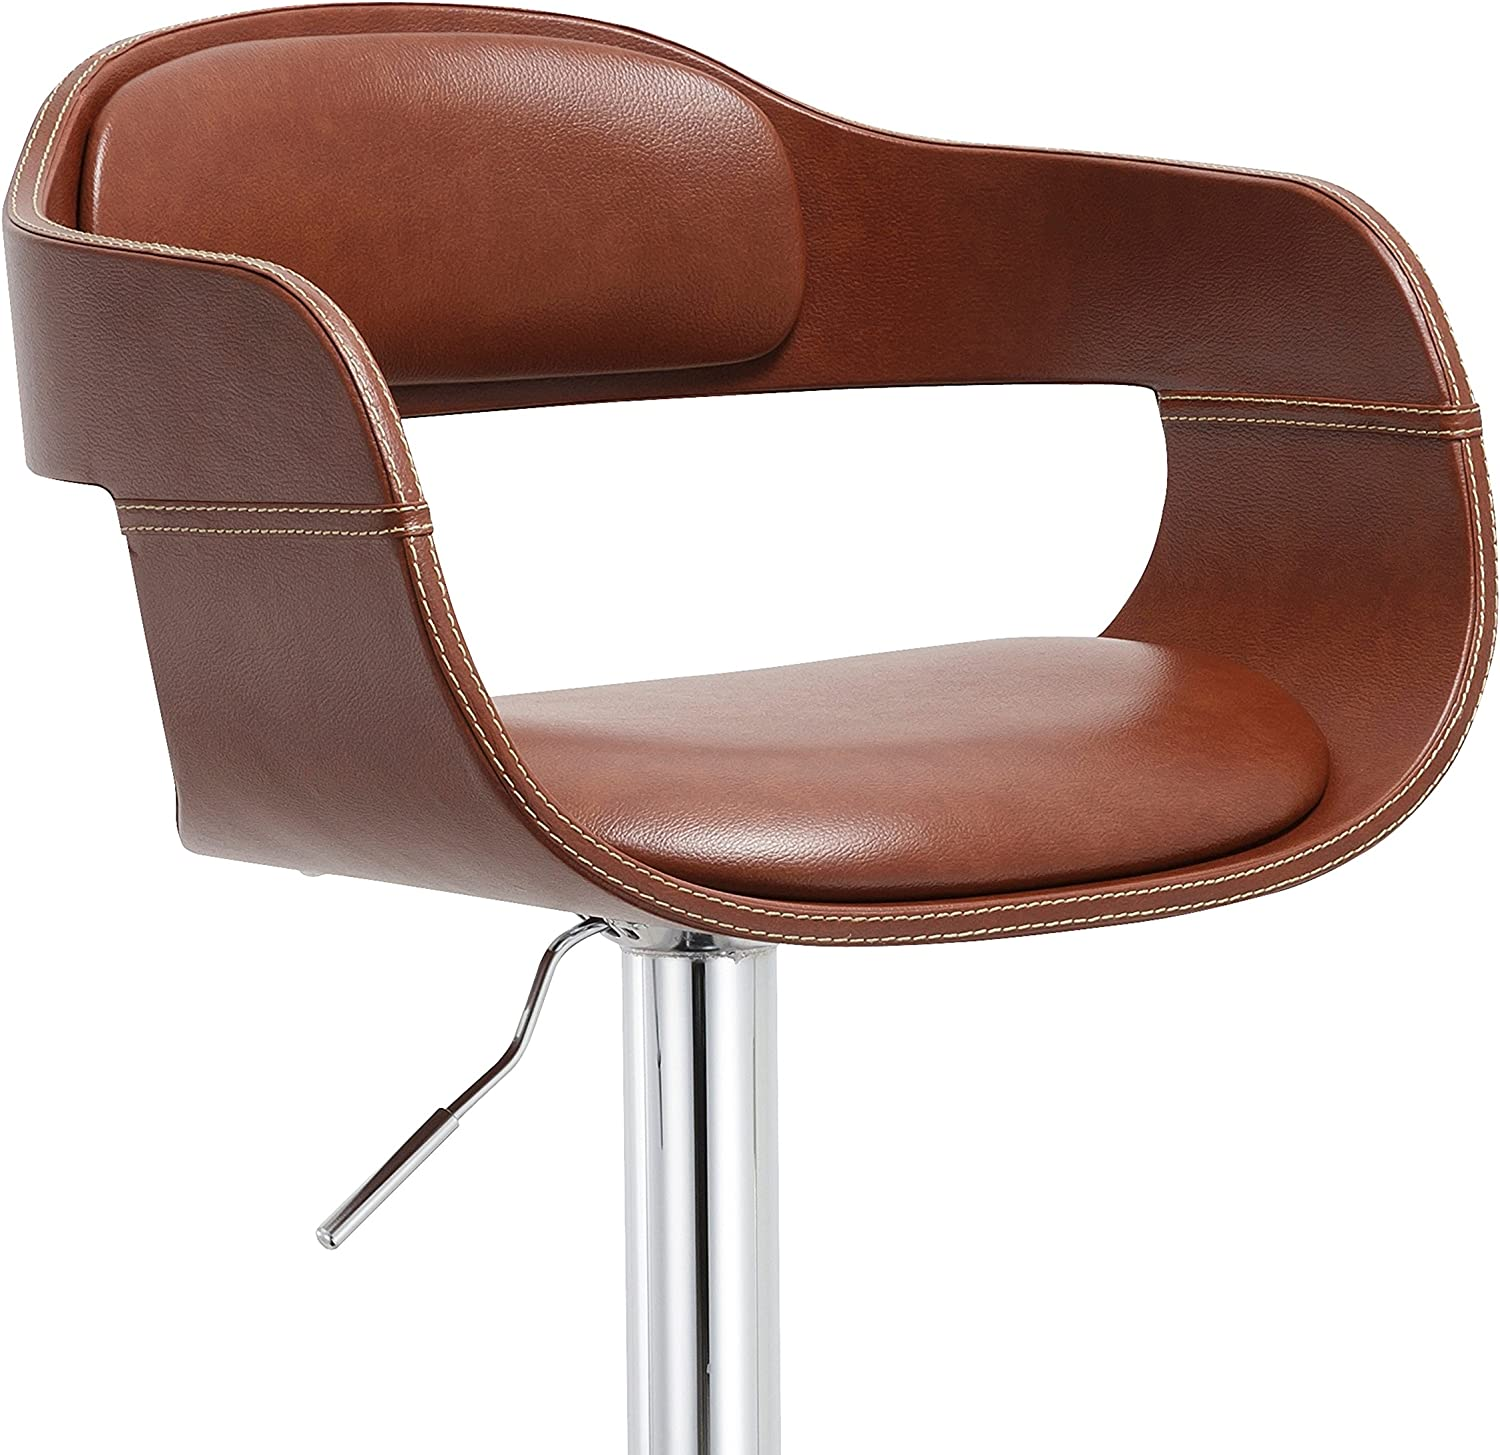 AC Pacific Modern Style Faux Leather Upholstered Chrome Metal Base Swivel Mechanism Kitchen Dining Barstool, Brown